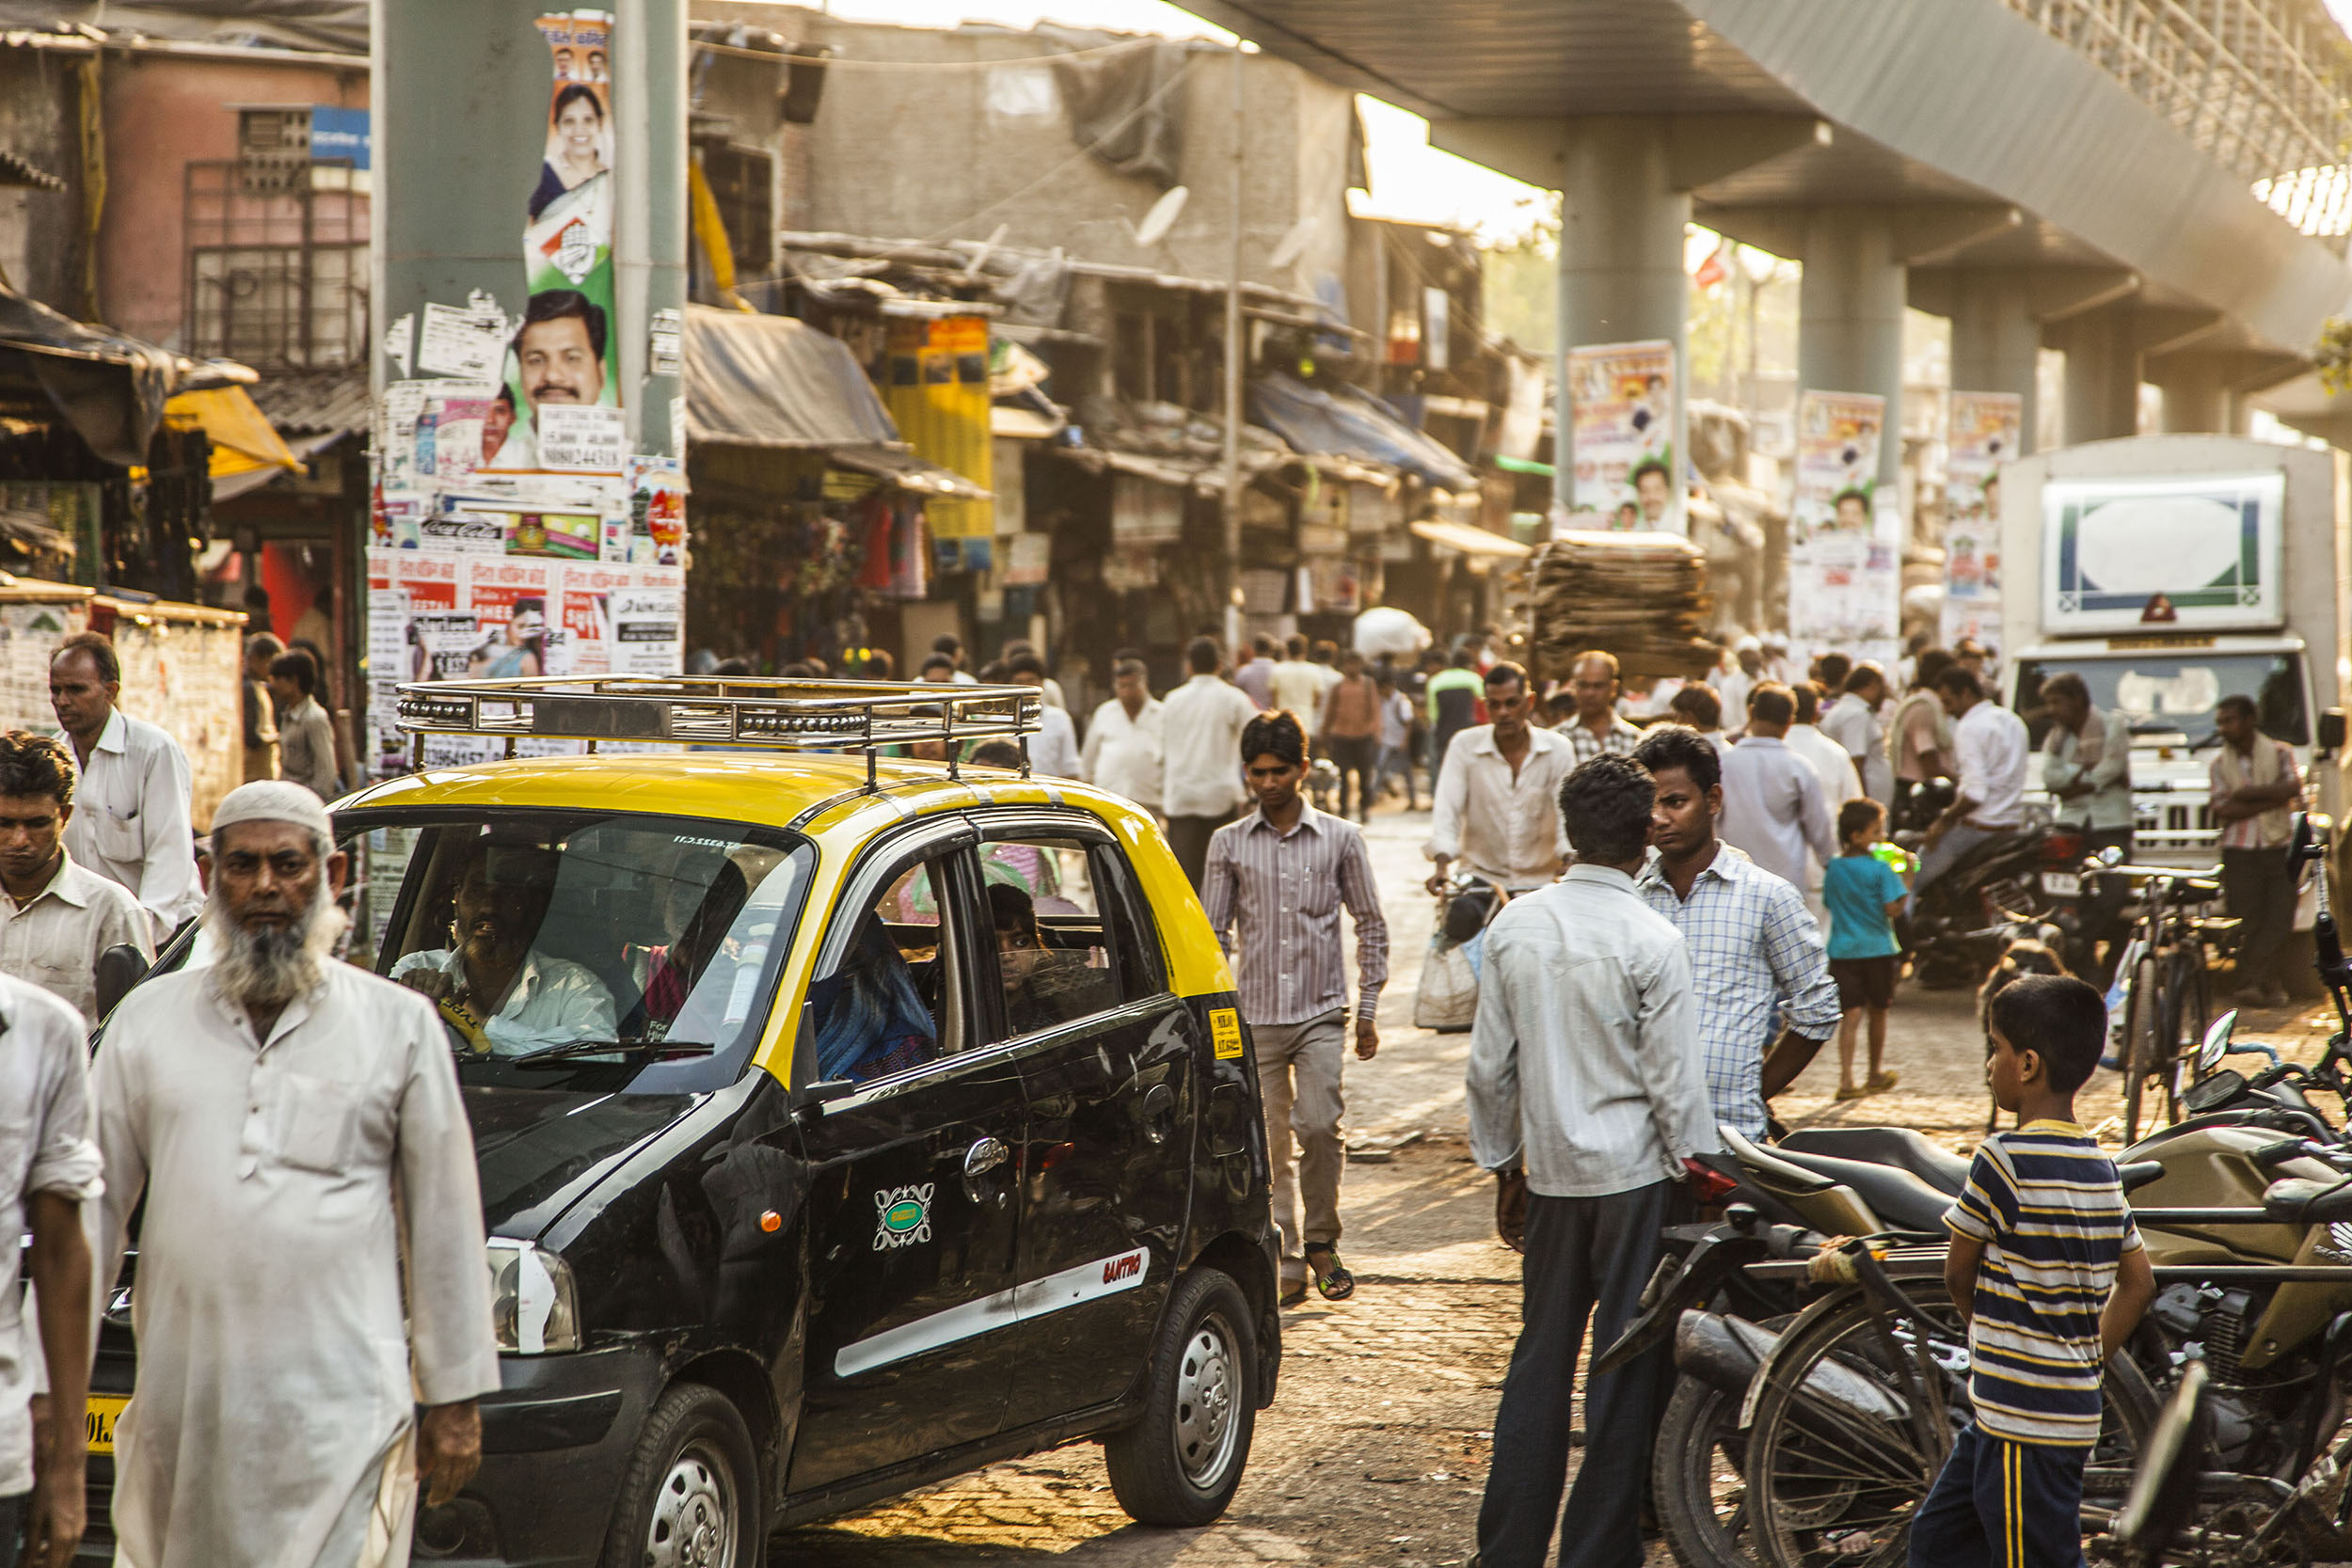 229_IMG_1603_Mumbai_Photo_by_Paul_Marc_Mitchell.jpg